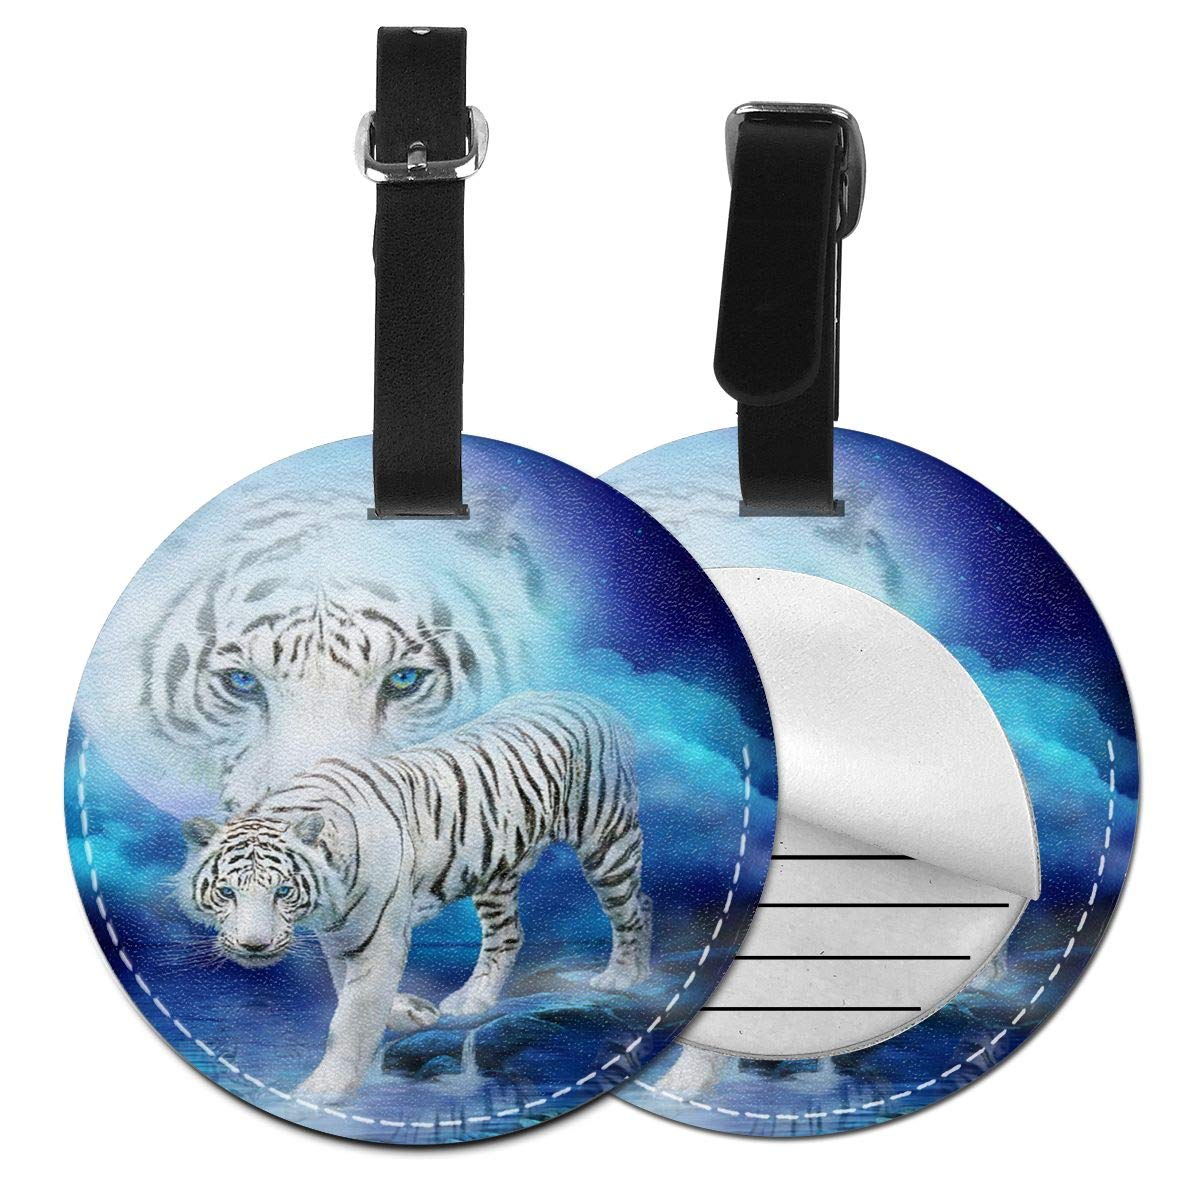 Free-2 White Tiger Moon Luggage Tag 3D Print Leather Travel Bag ID Card